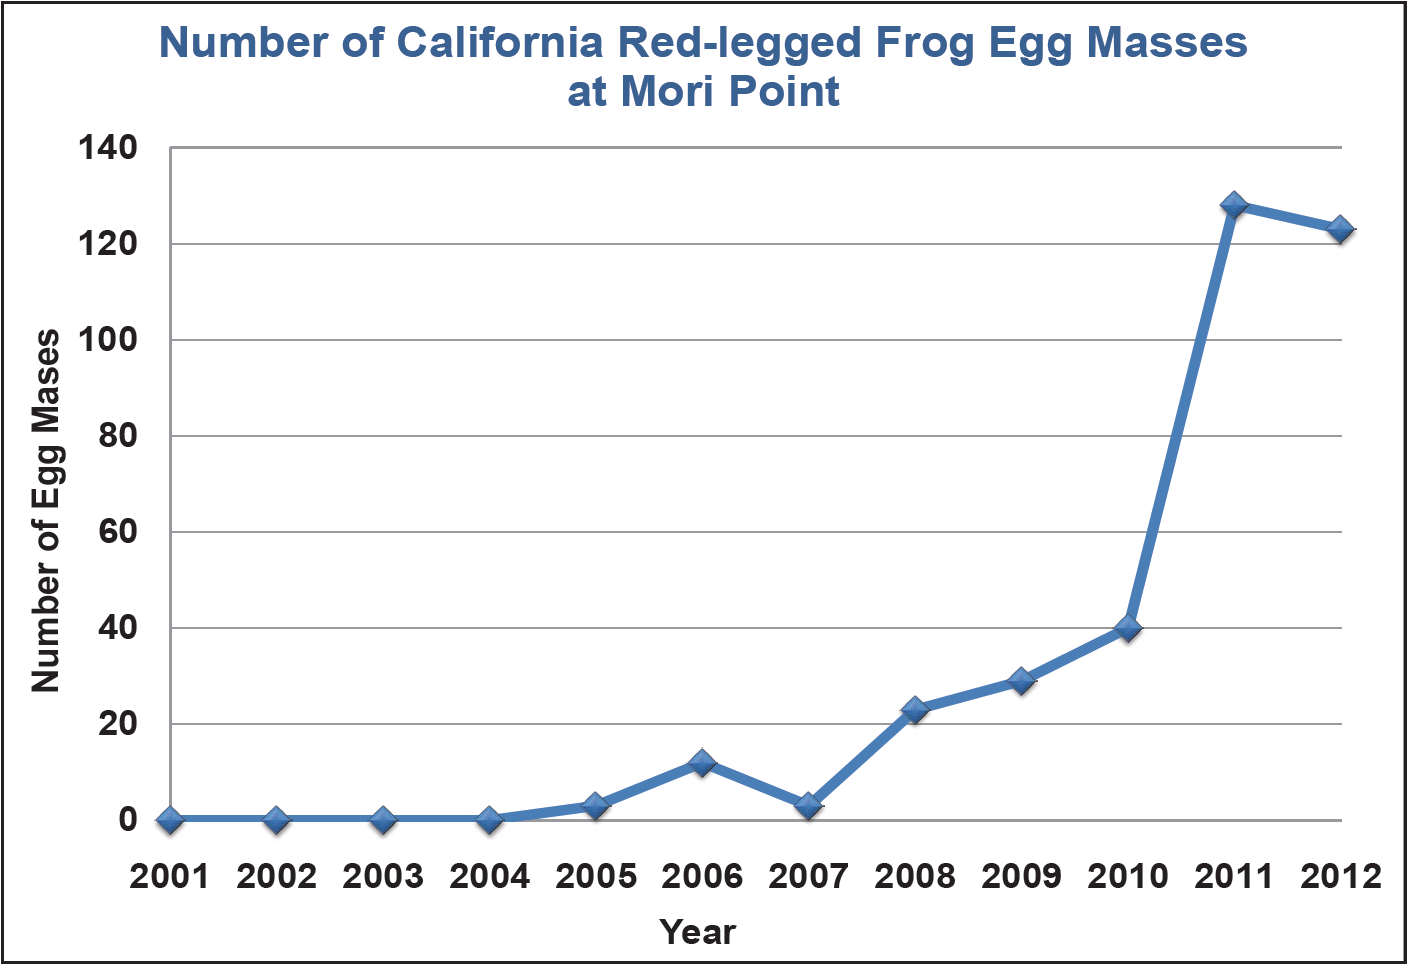 Graph showing that the number of red-legged frog egg masses at Mori Point has increased from 0 to over 120 since the ponds were built in 2004.